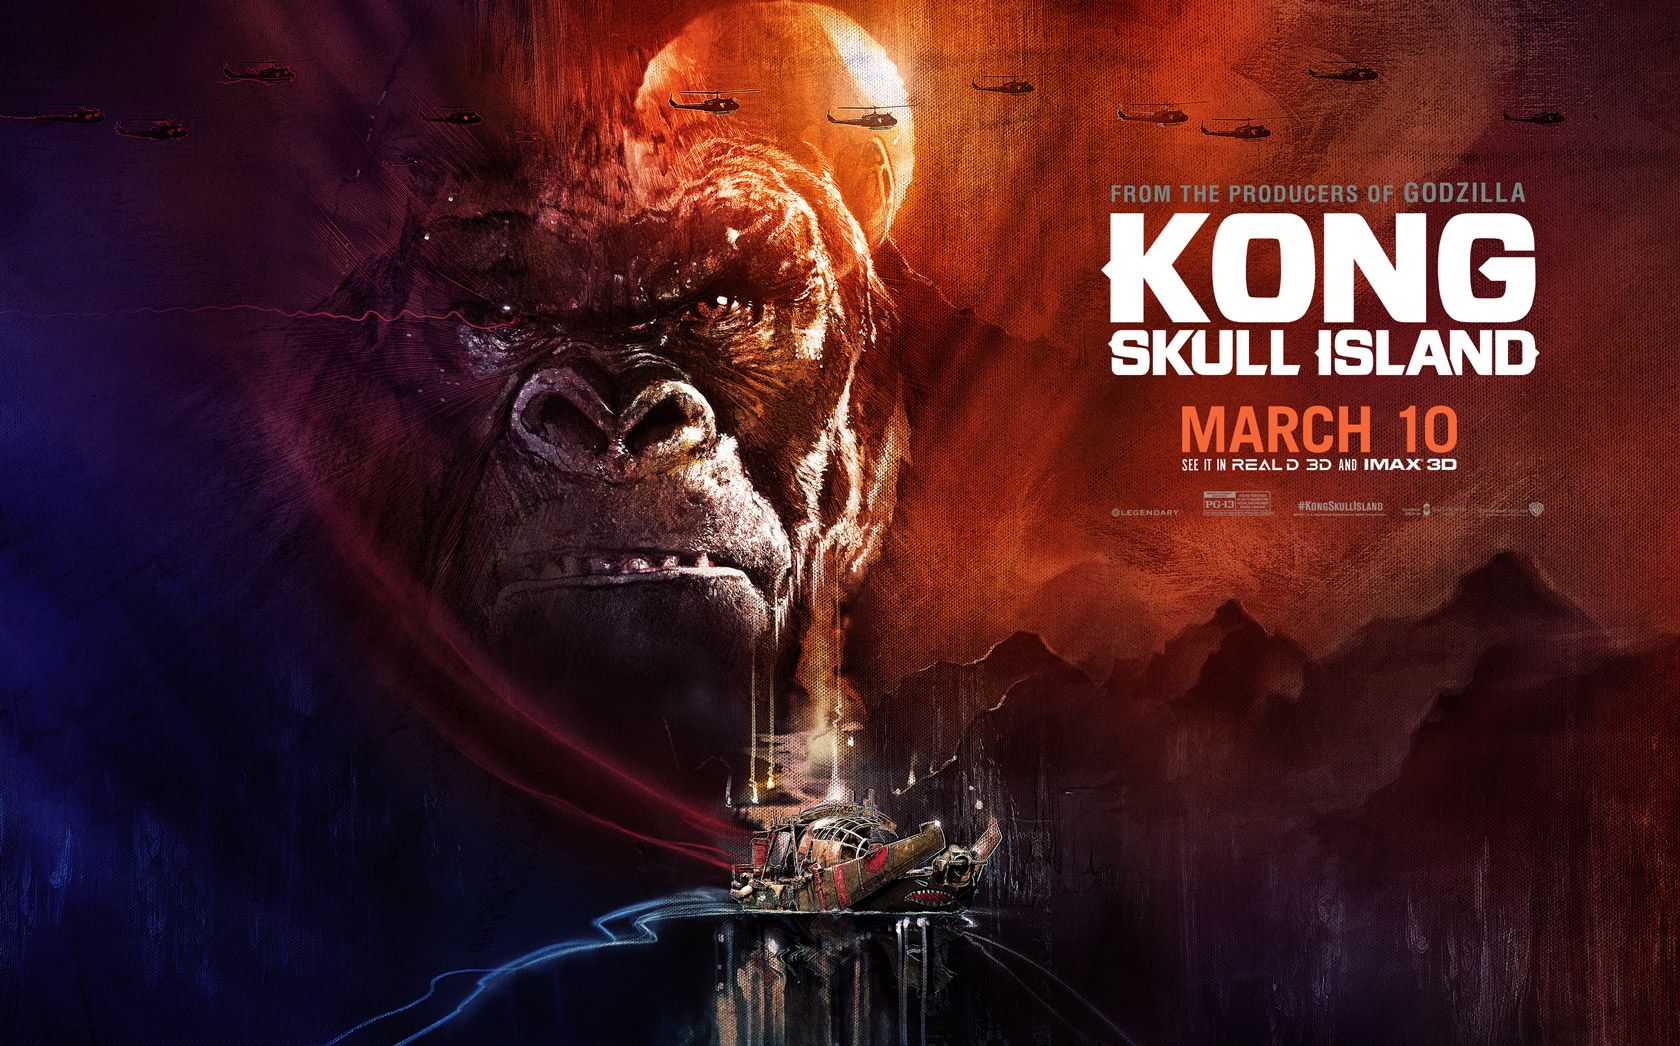 Poster design online free download - Watch Kong Skull Island 2017 Streaming Online For Free Download Digital